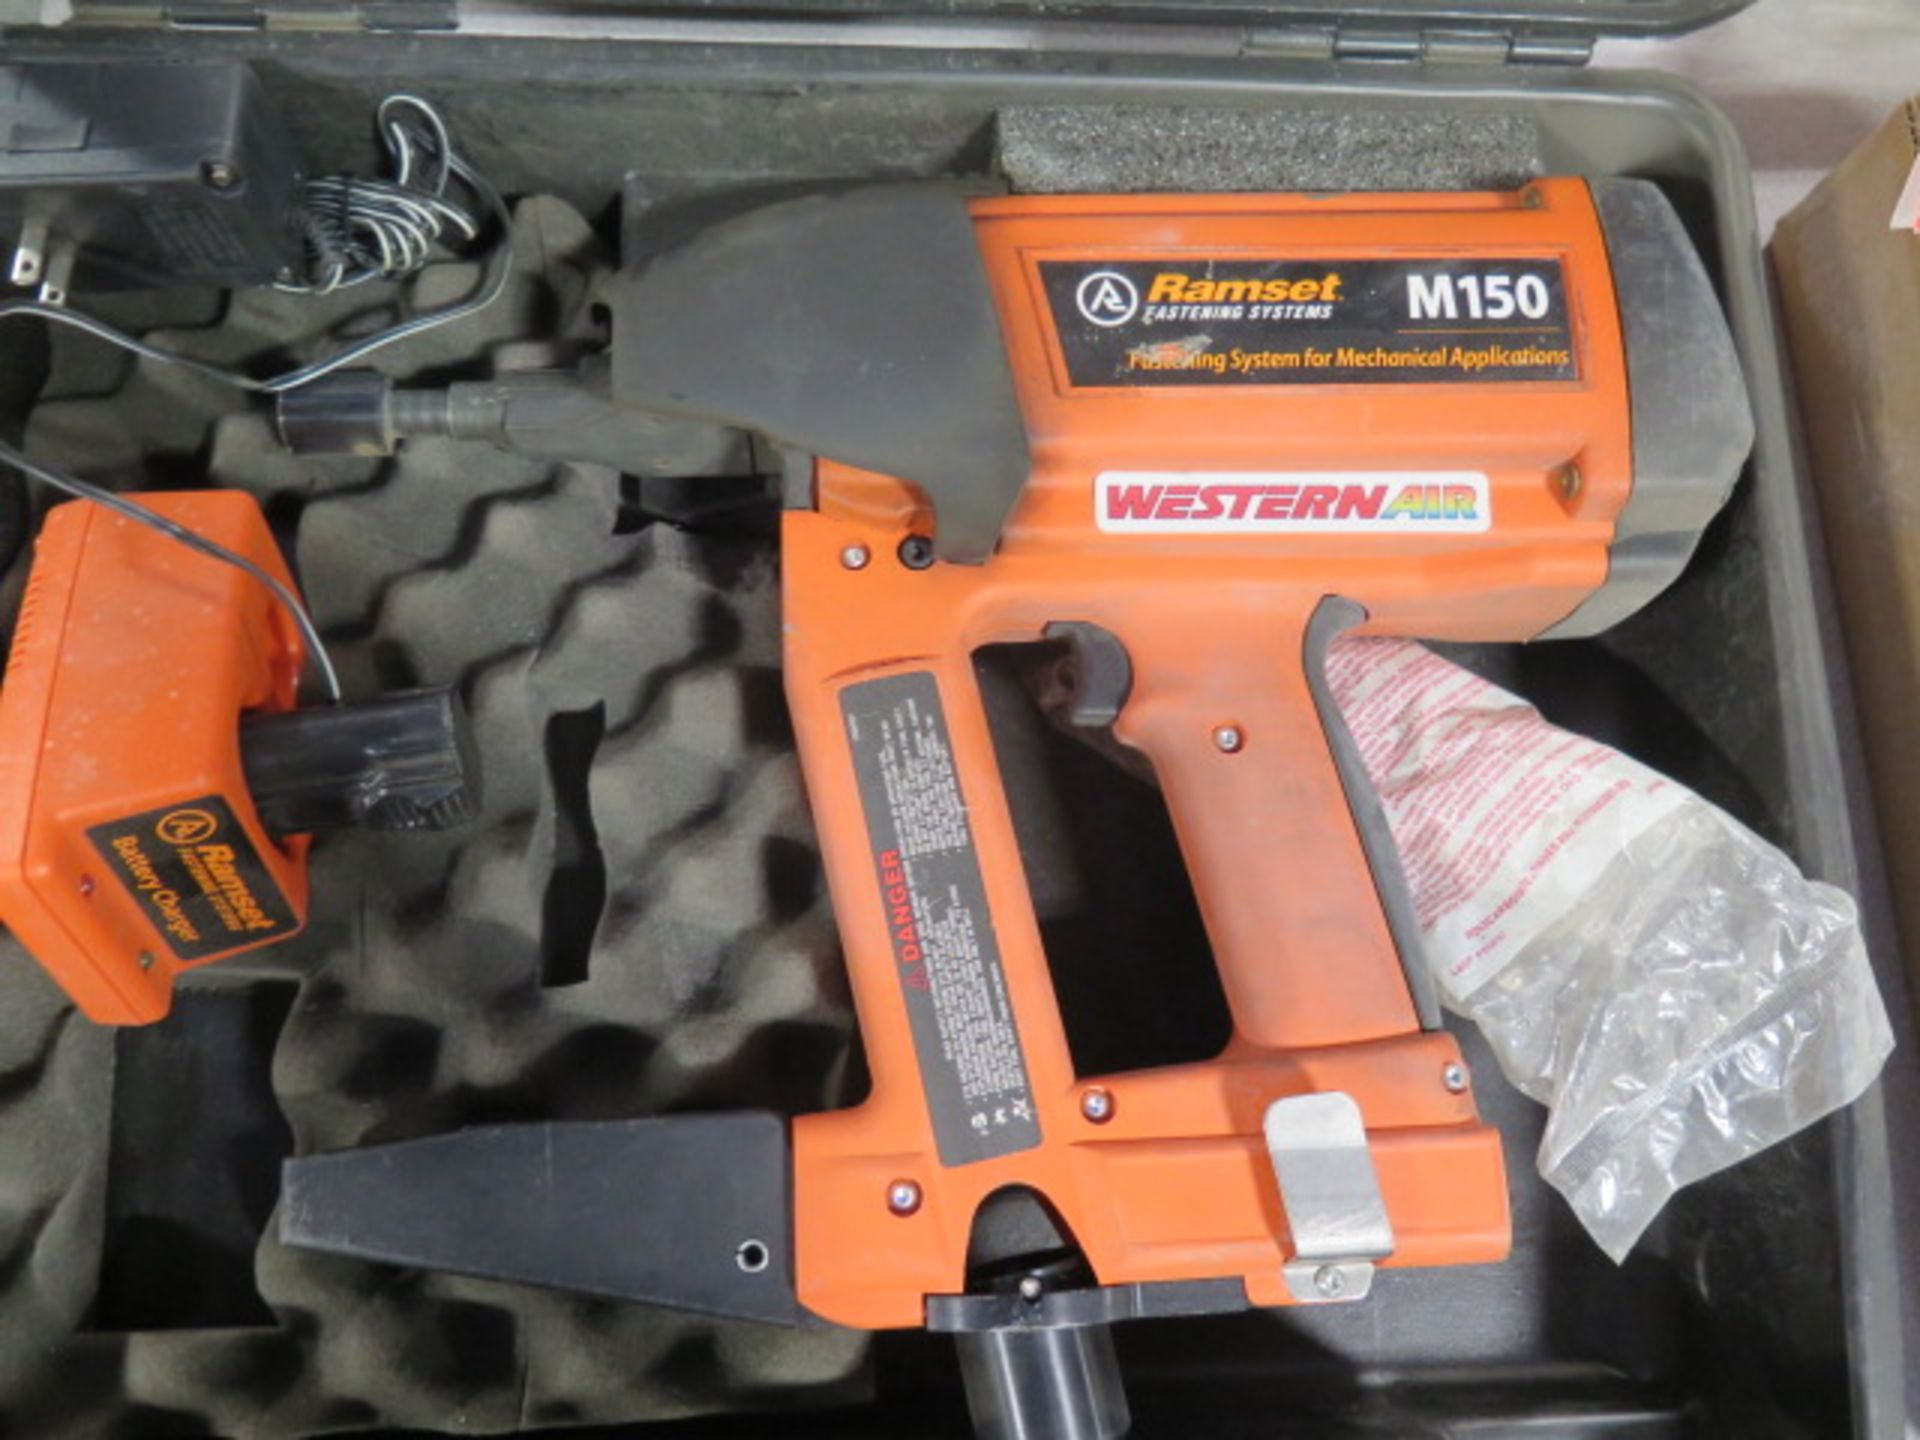 Ramset mdl. M150 Gss Powered Piston Type Fastening Gun w/ Magazine Feed (SOLD AS-IS - NO WARRANTY) - Image 2 of 5